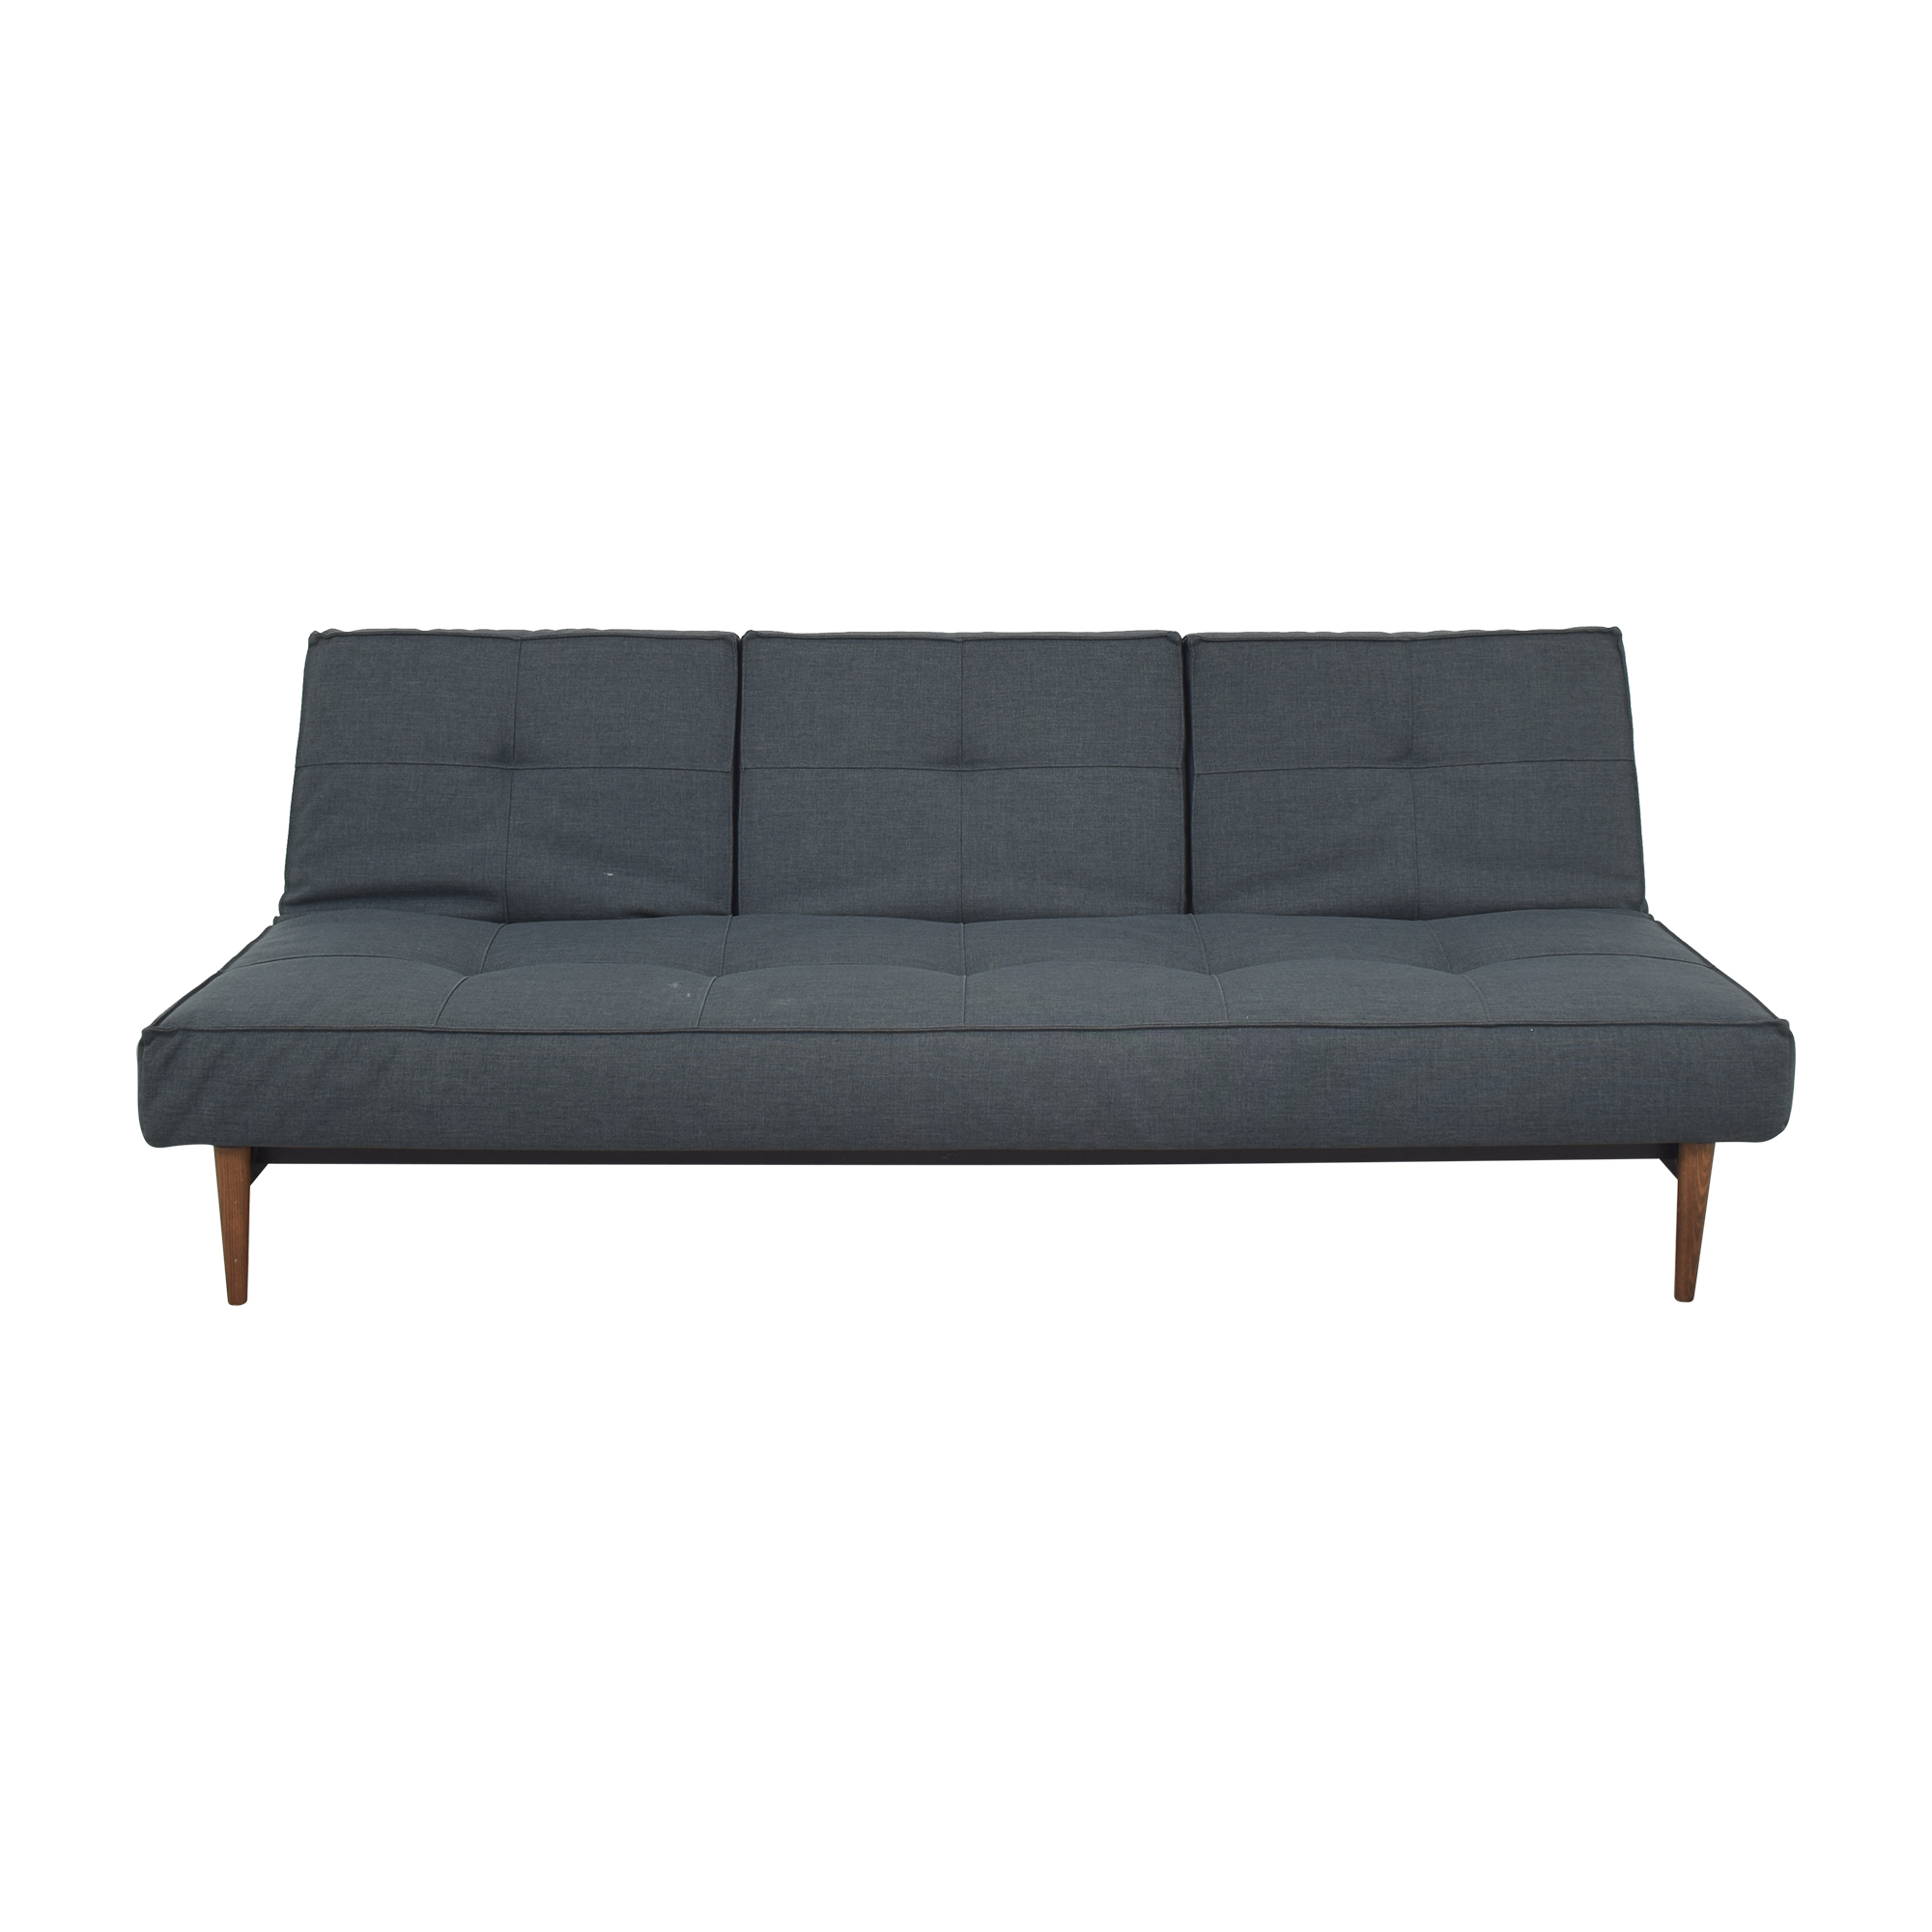 Room & Board Room & Board Eden Convertible Sleeper Sofa pa